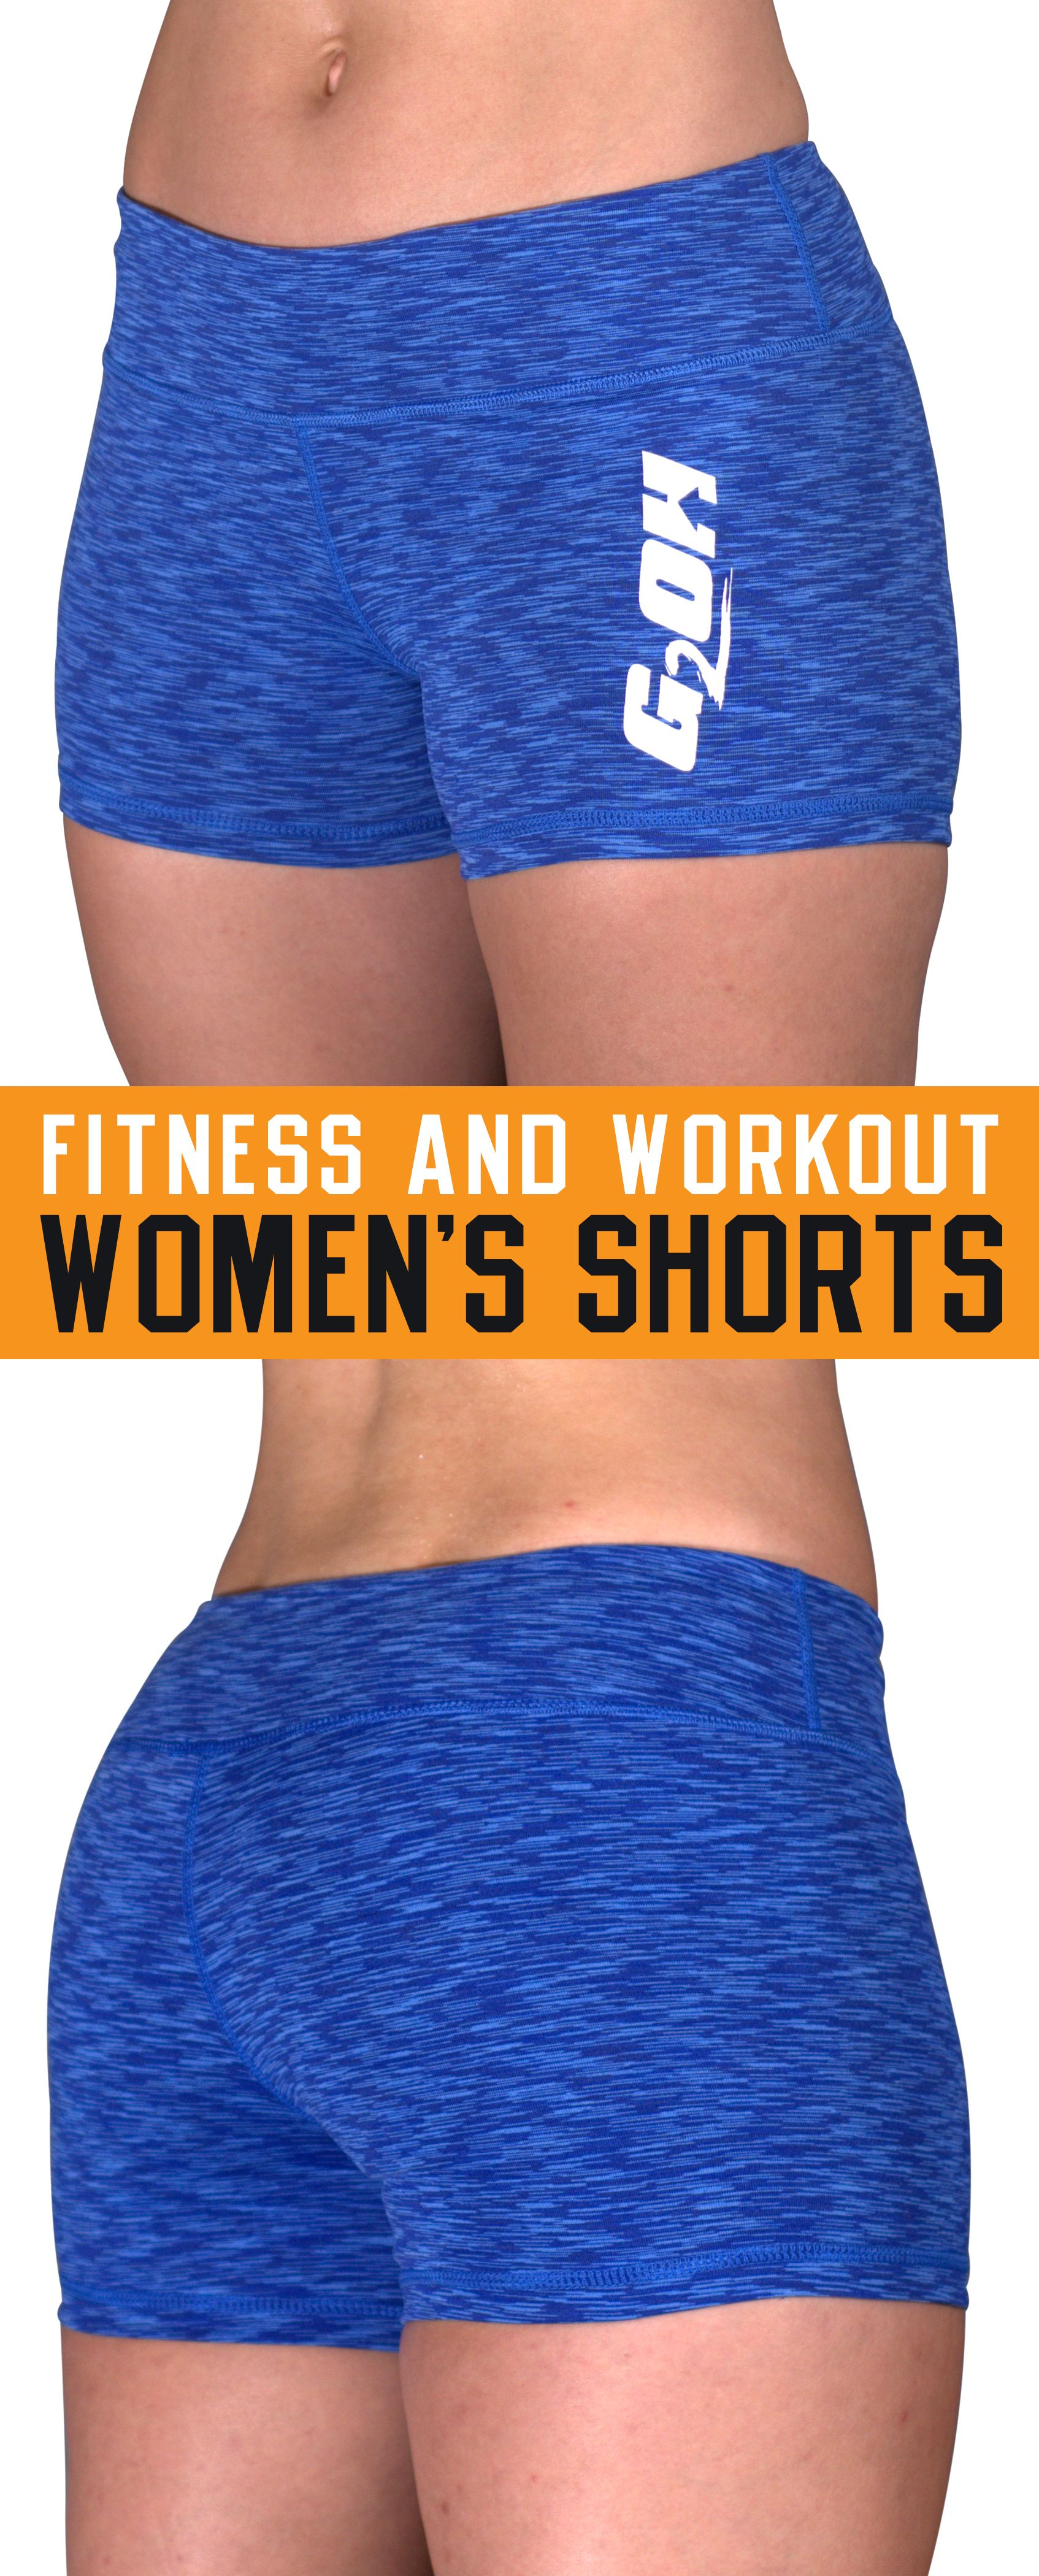 3c31e918cfe2 G2OH Women's Tight Shorts are super comfy, stay in place while you work out,